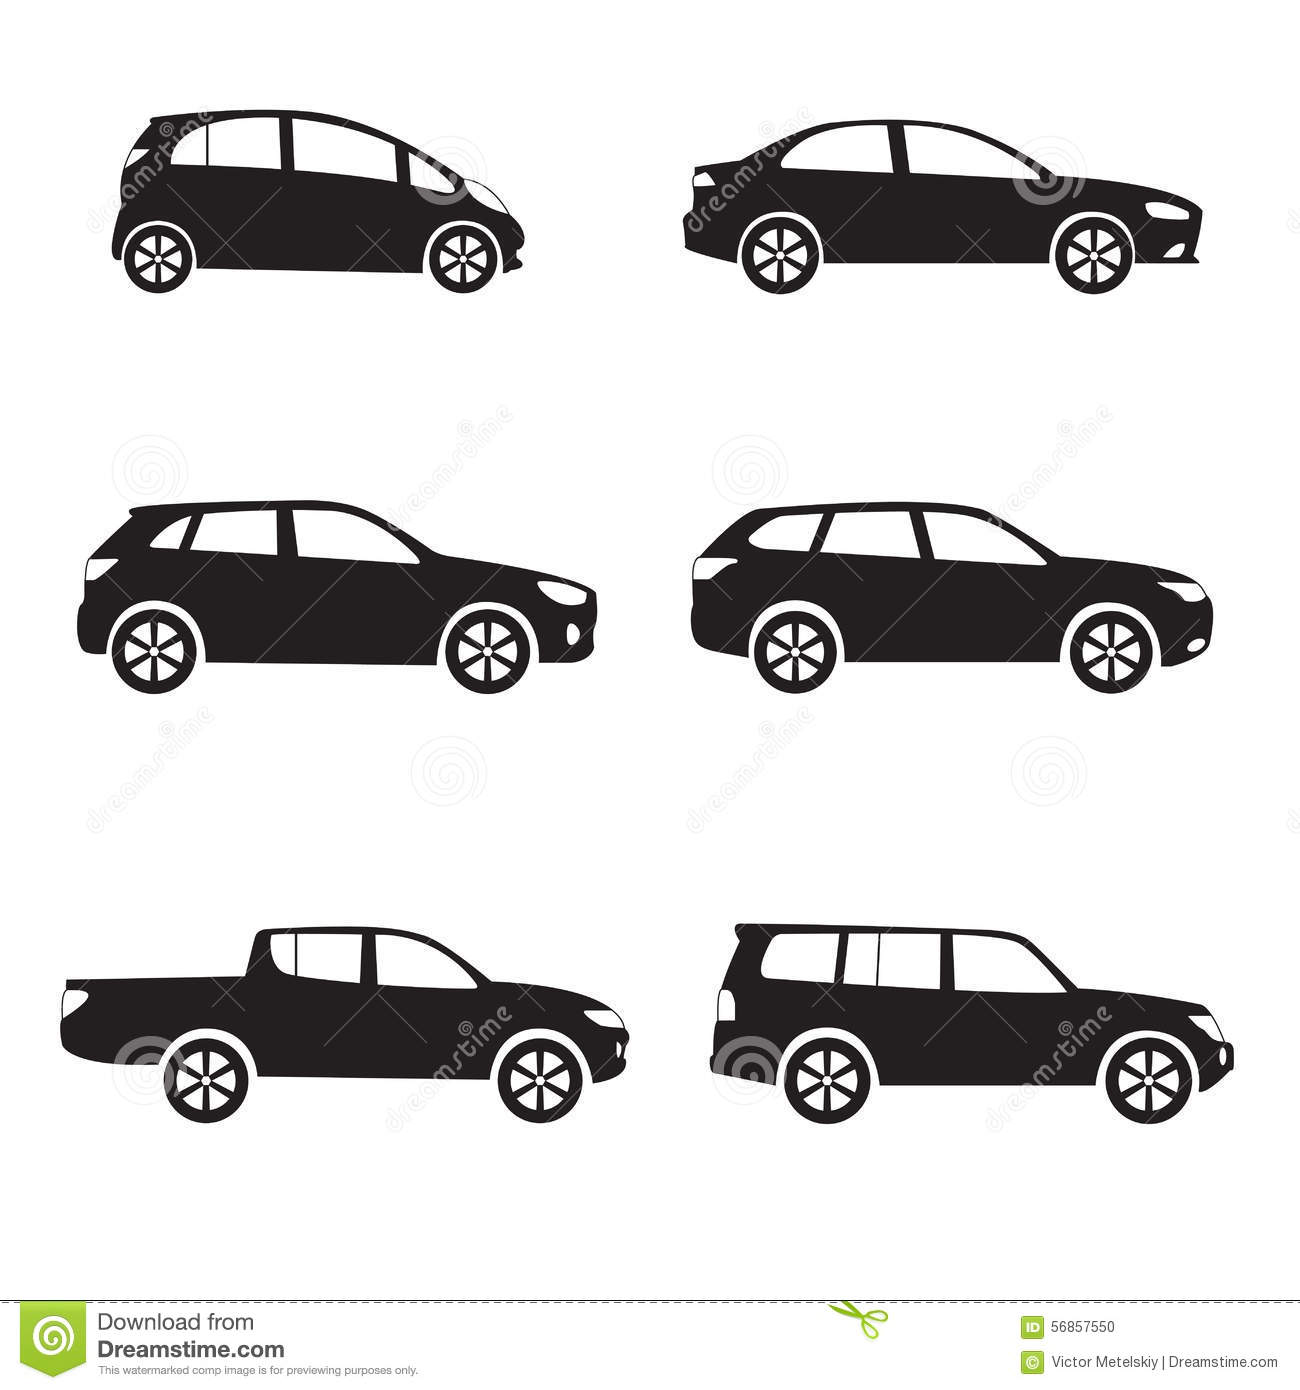 Illustration Stock Ensemble D Ic Ne De Voiture Ou De Vhicule Forme Diffrente De Voiture De Vecteur Image56857550 on sports car illustration